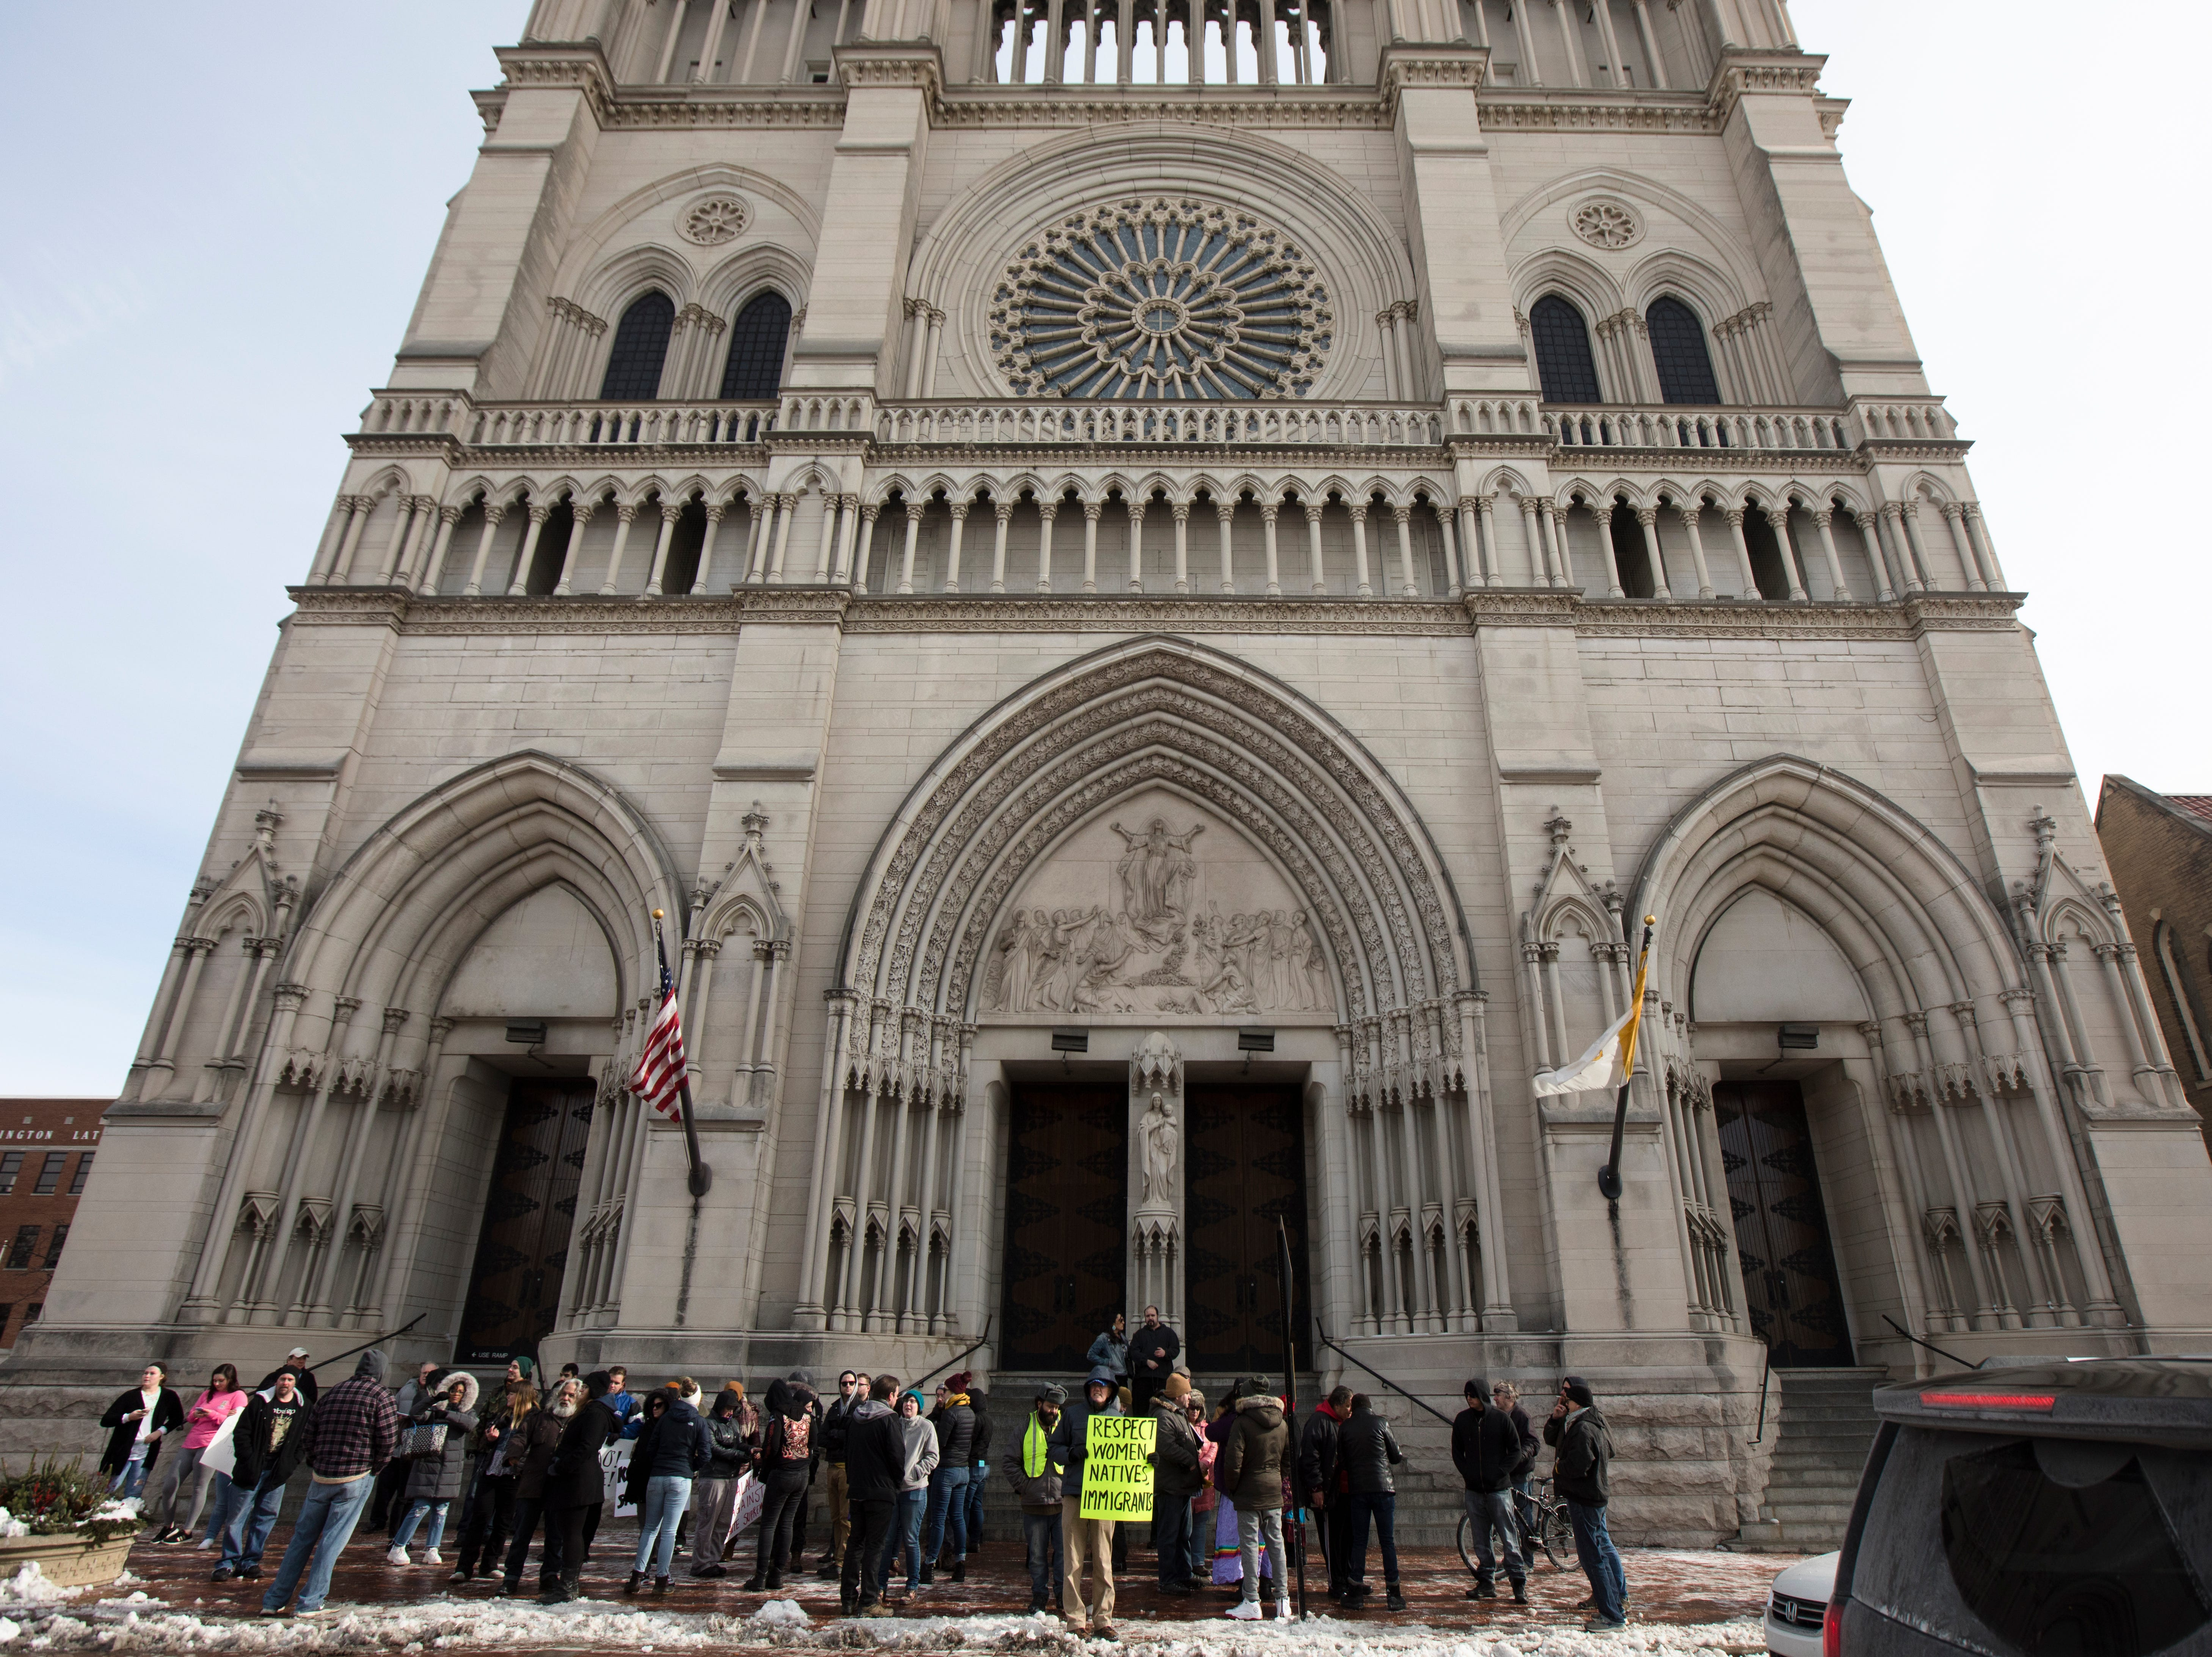 People stand outside the Cathedral of the Assumption during a protest of the Catholic Diocese of Covington outside in Covington, Kentucky, on Tuesday, Jan. 22, 2019.  The protest was planned by the American Indian Movement in response to incident in Washington DC when students of Covington Catholic High School were filmed in an altercation with a Native American man.